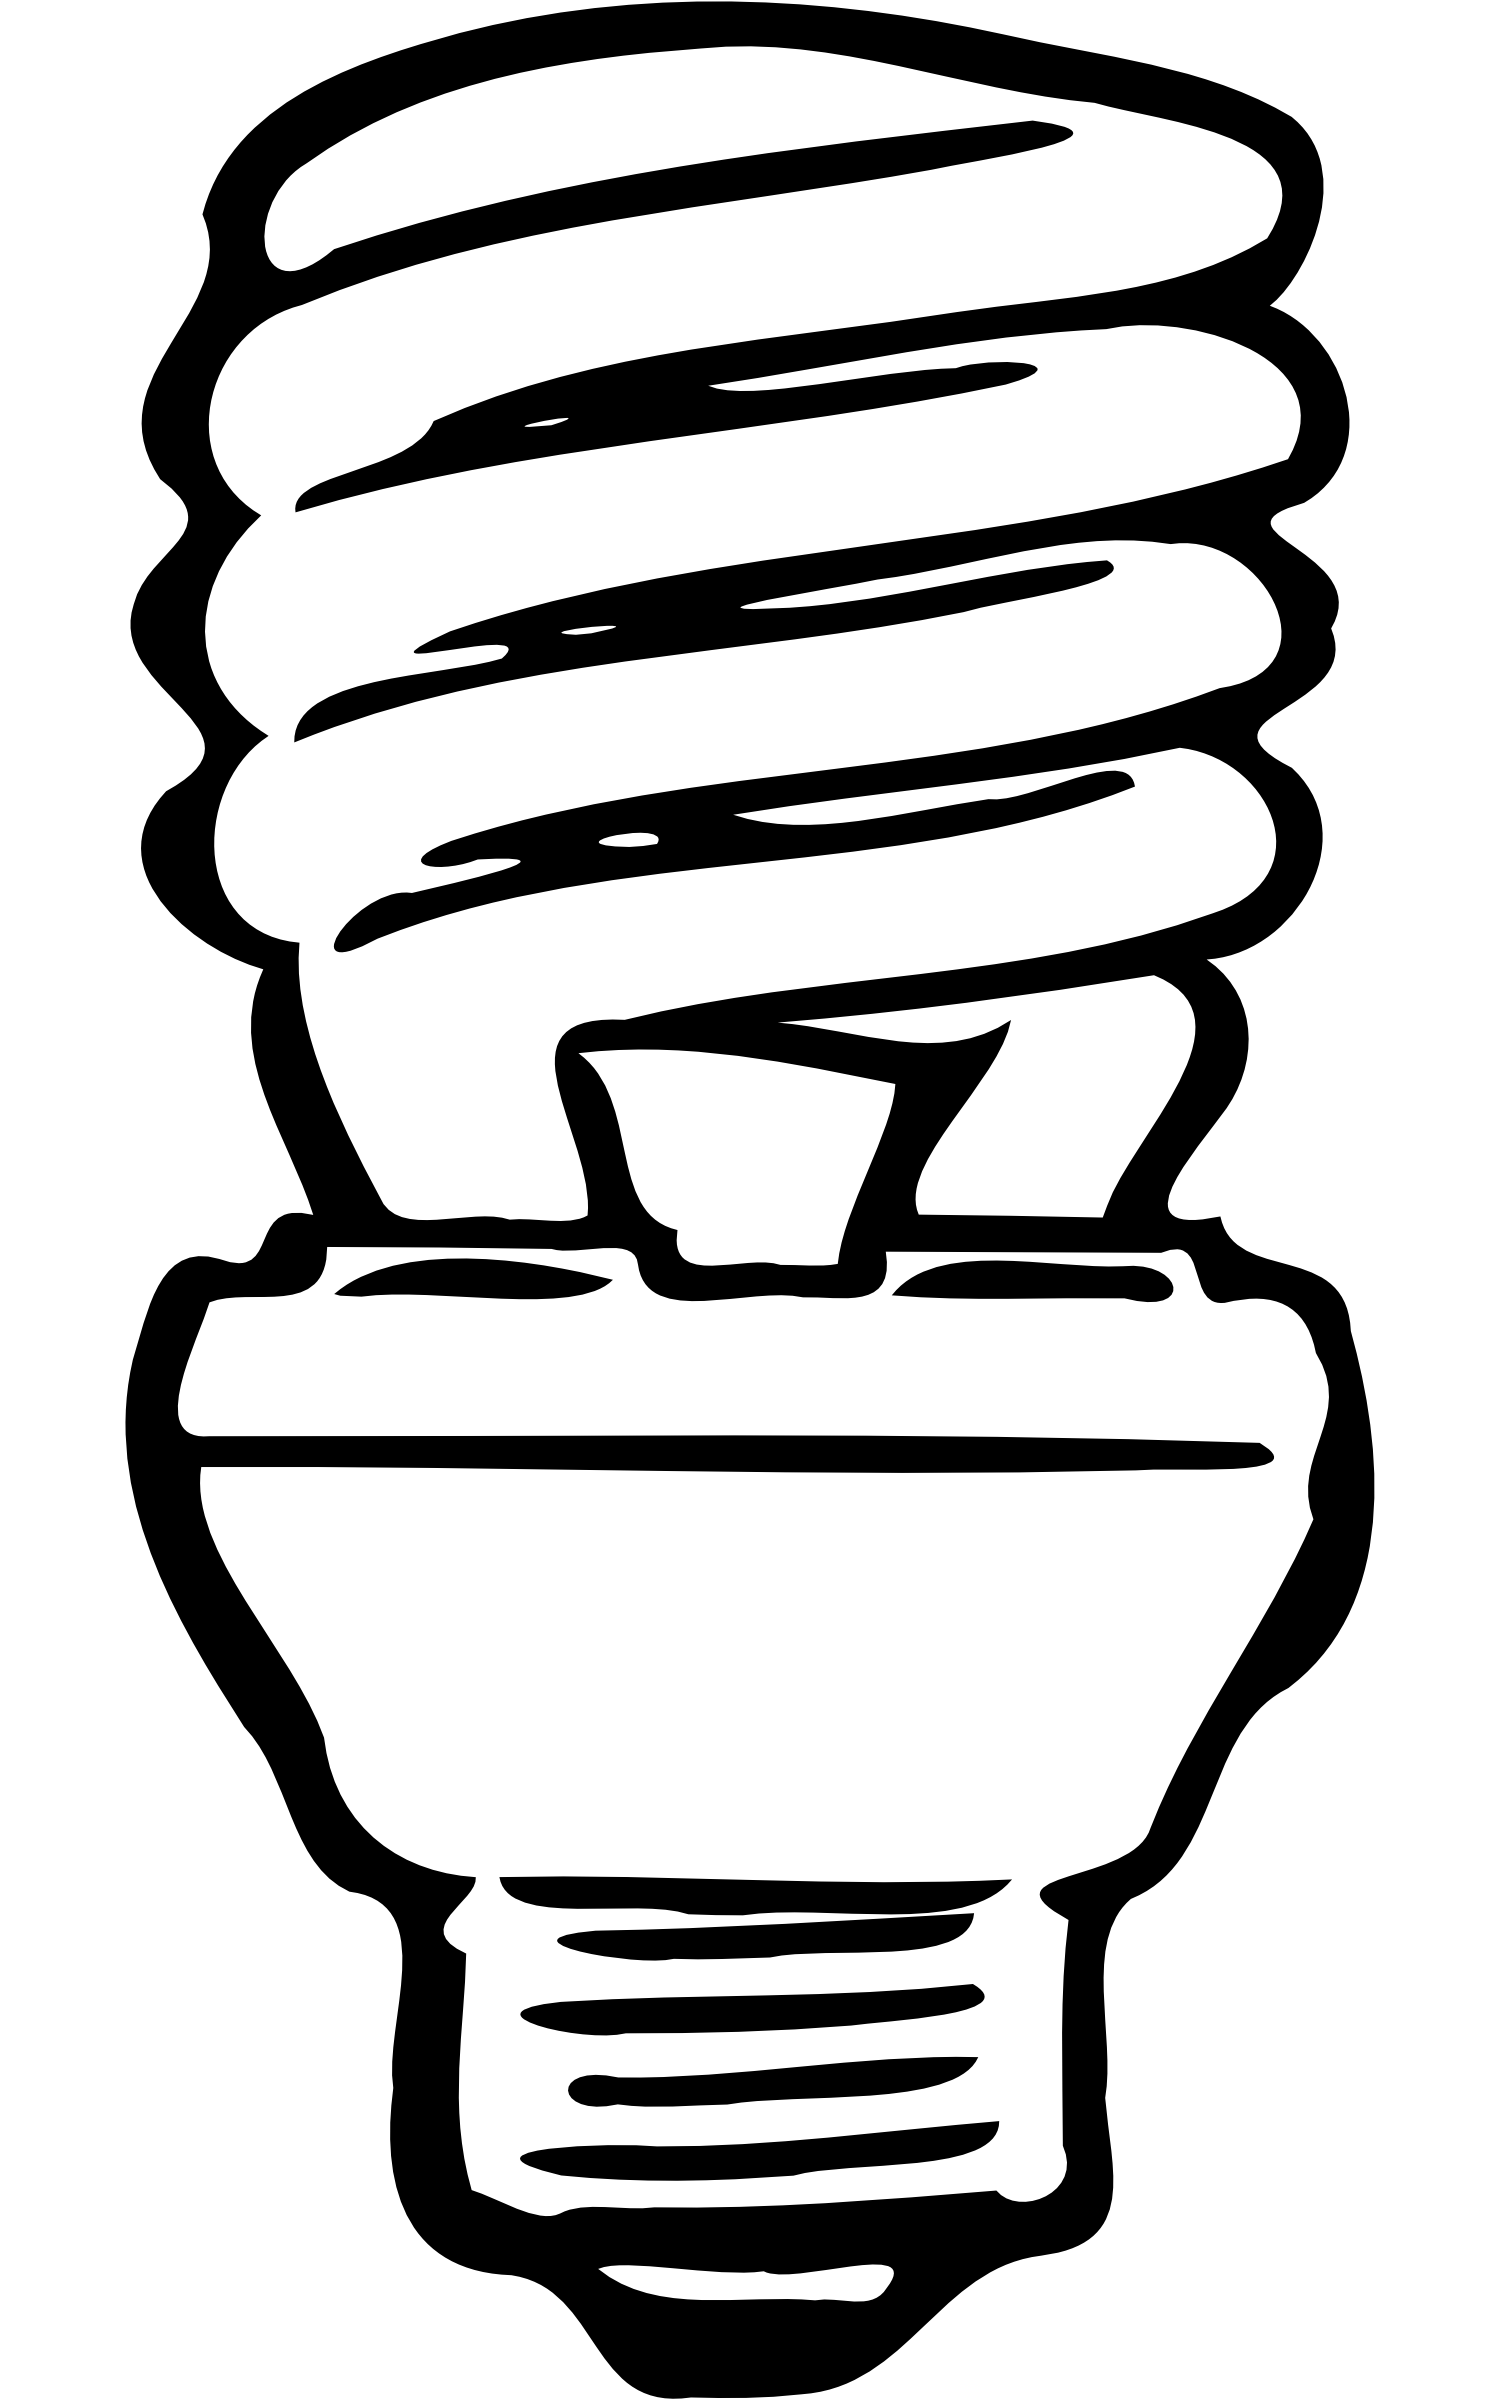 Cfl panda free images. Lightbulb clipart lighted bulb